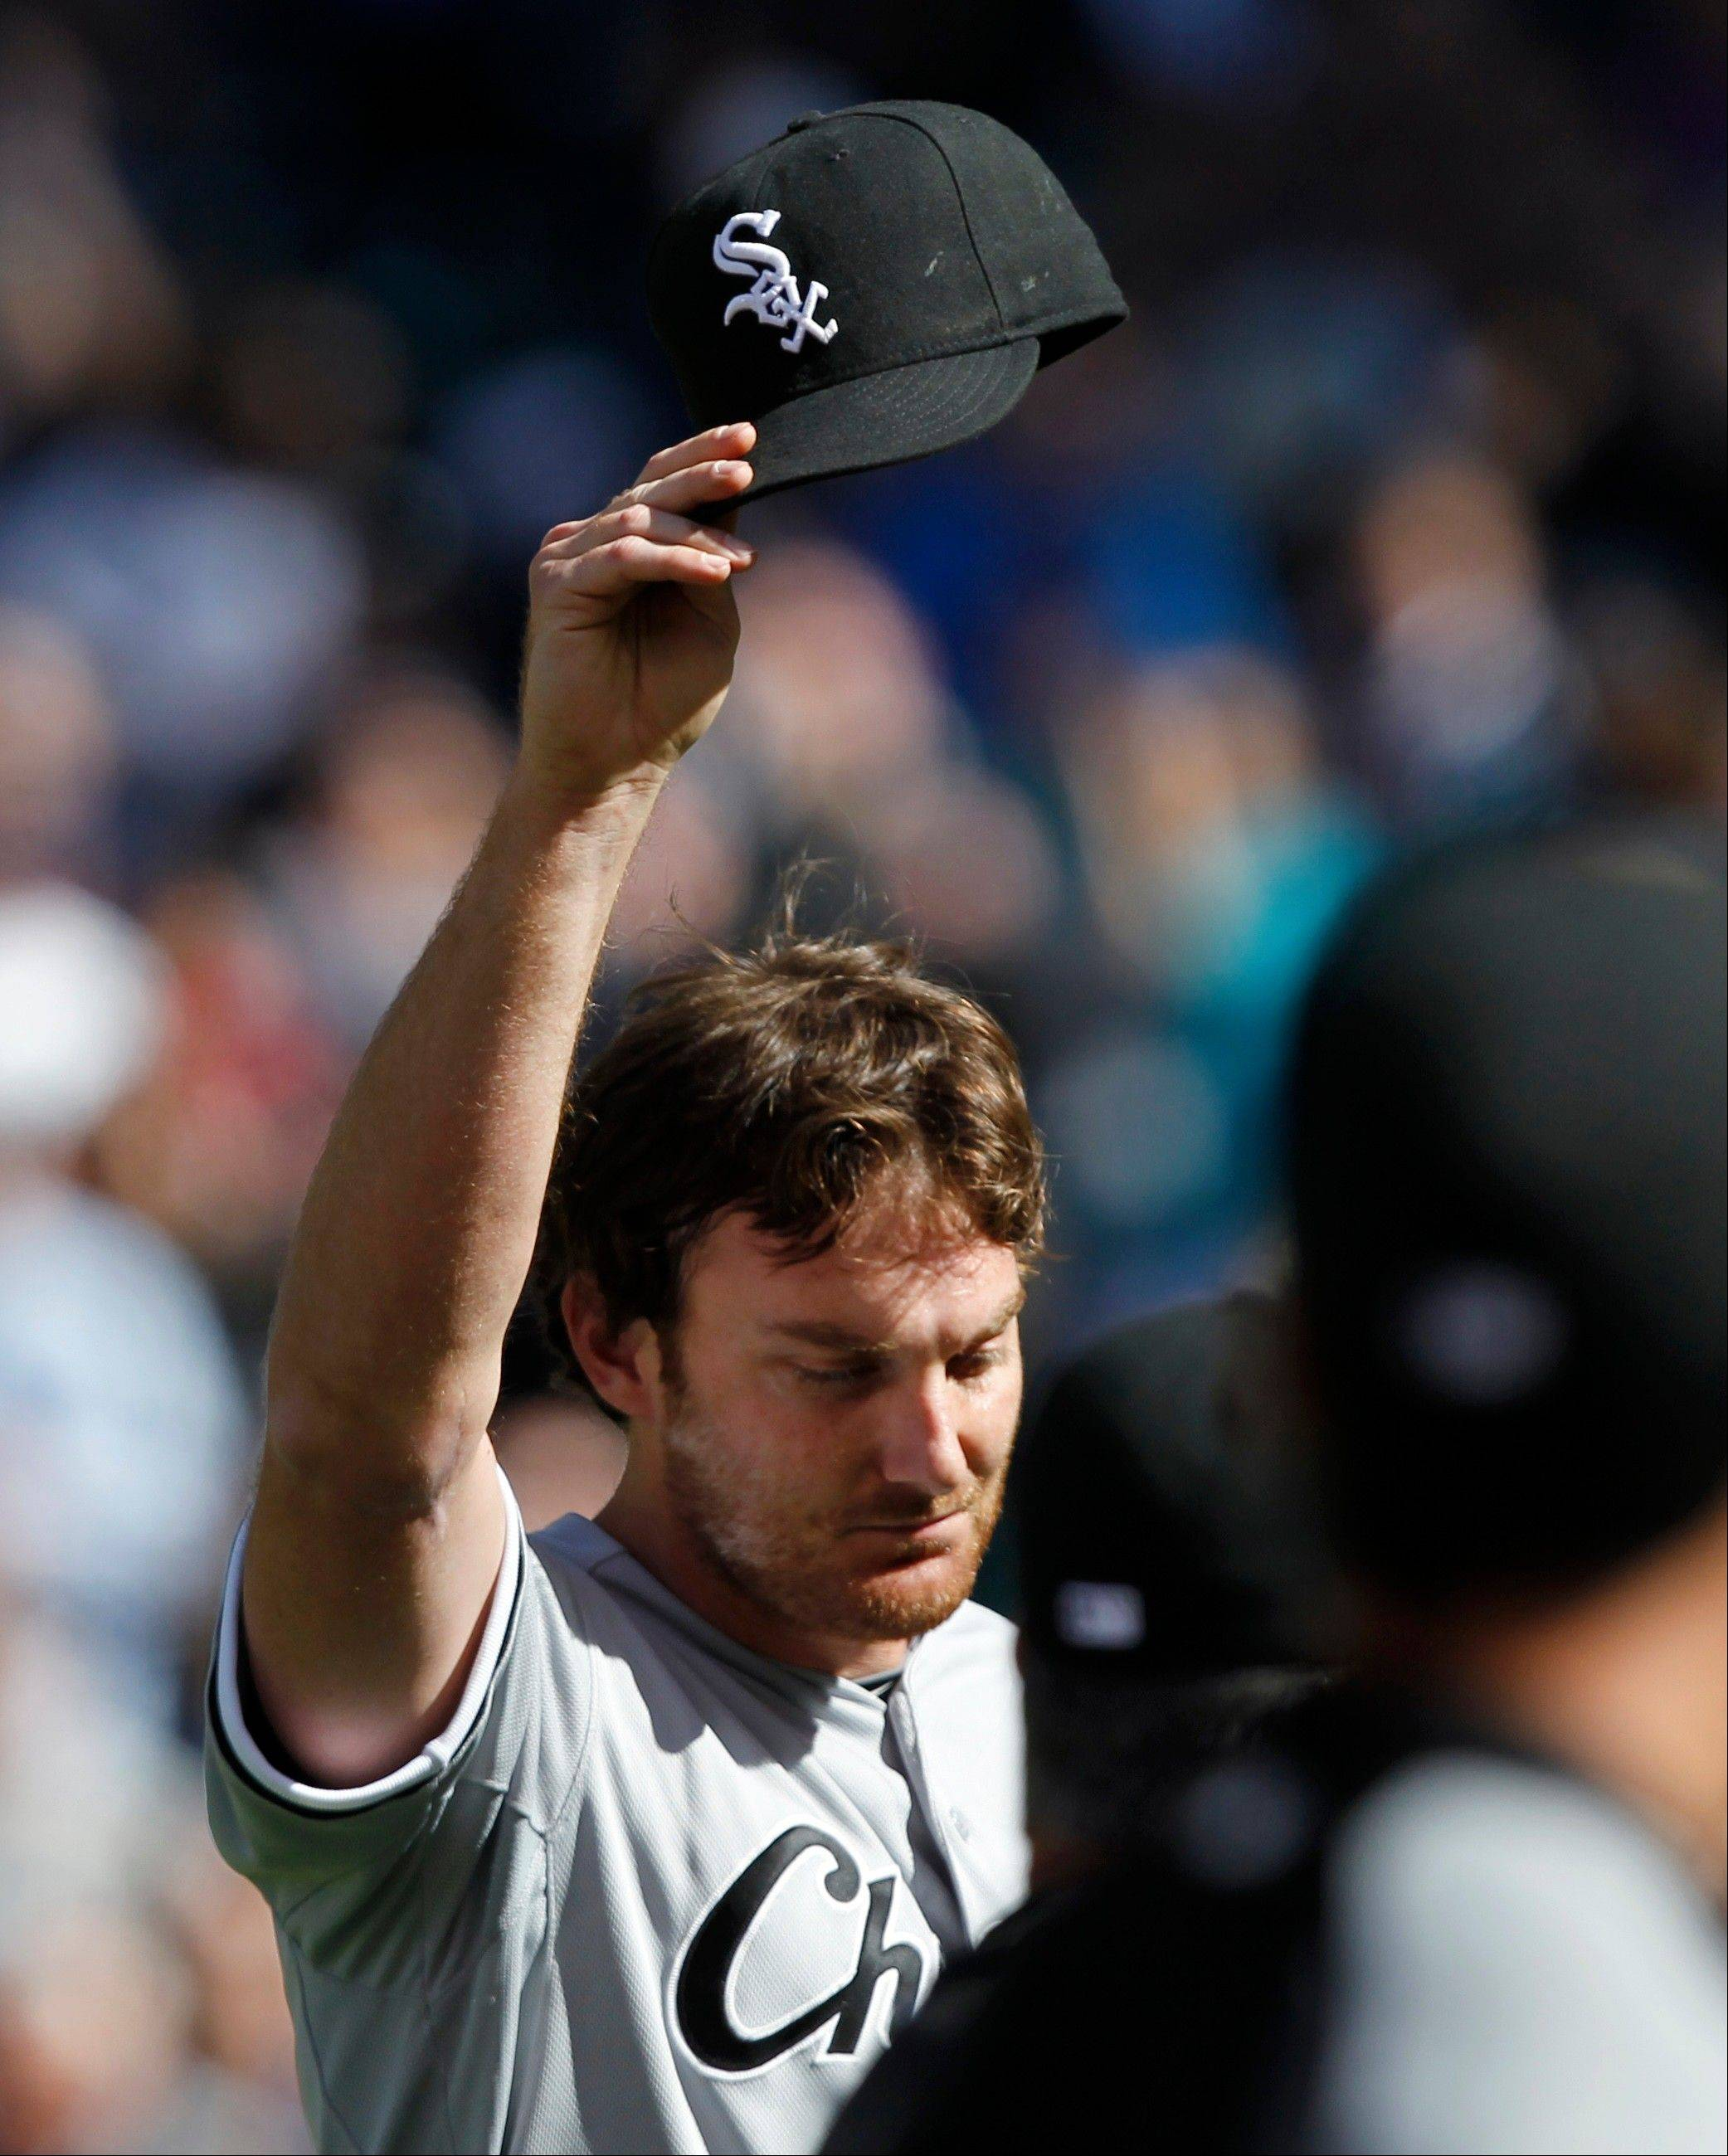 Chicago White Sox starting pitcher Phil Humber waves his cap after pitching a perfect baseball game against the Seattle Mariners, Saturday, April 21, 2012, in Seattle. The White Sox won 4-0.